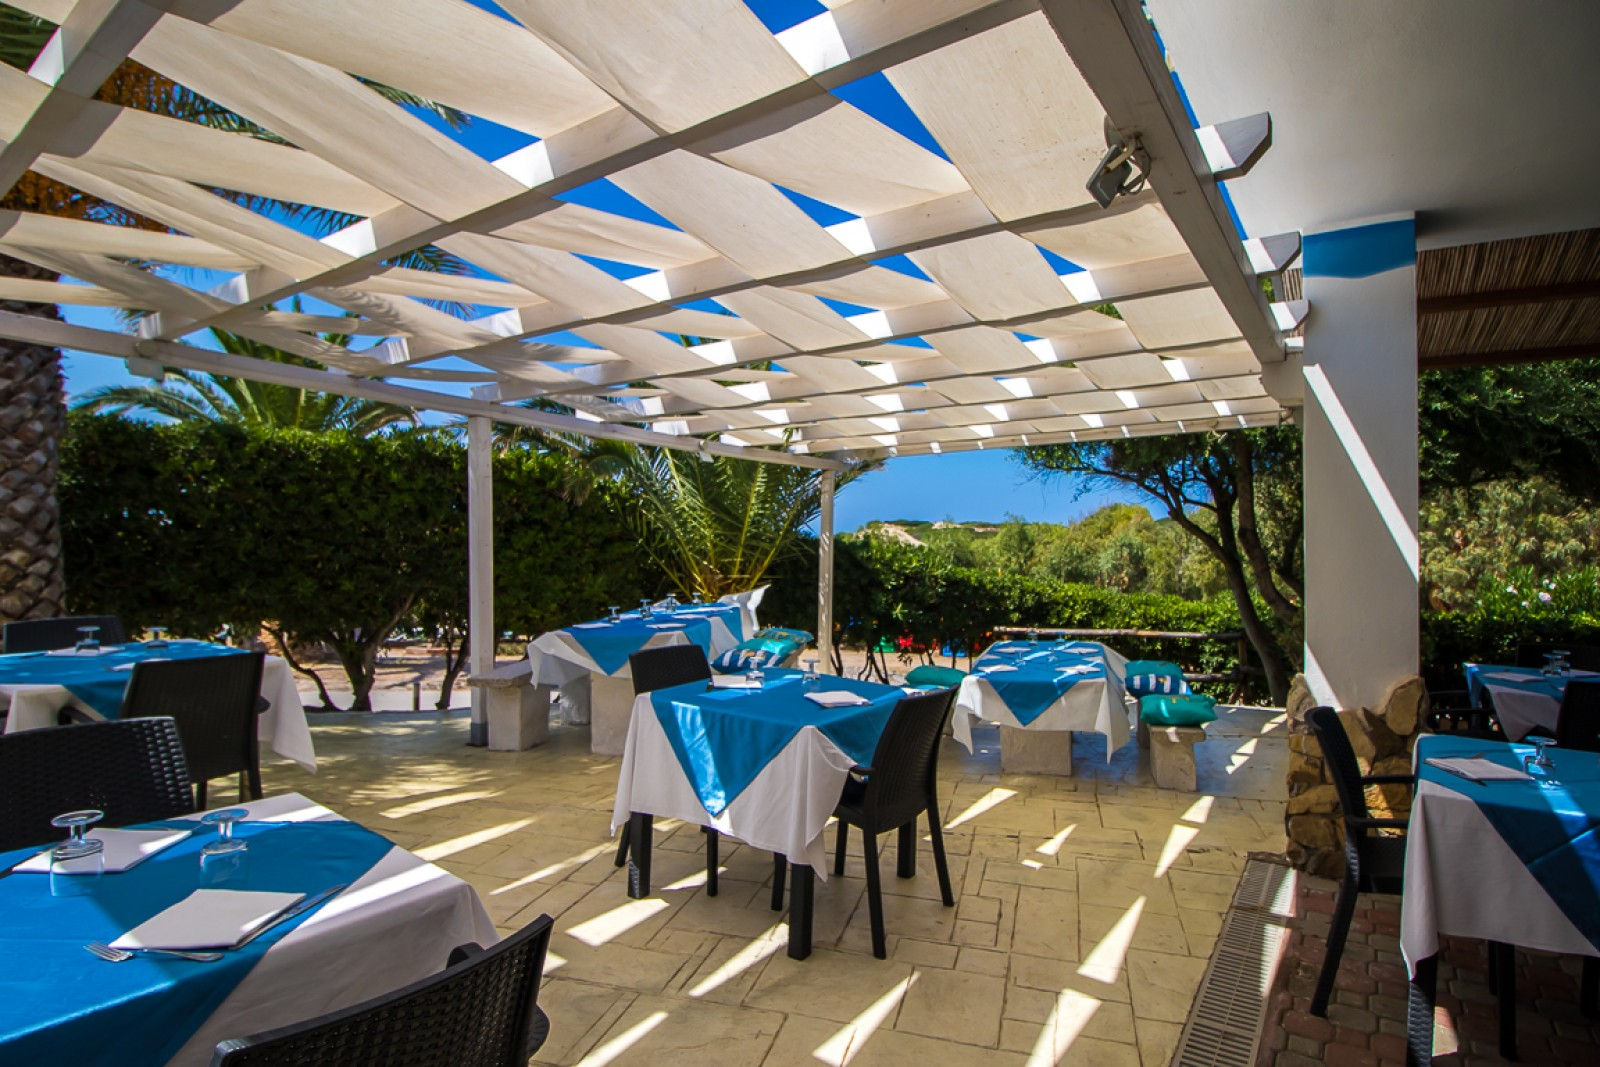 Restaurant Bar Village Camping La Foce Sardinia, Holiday Park, Italy